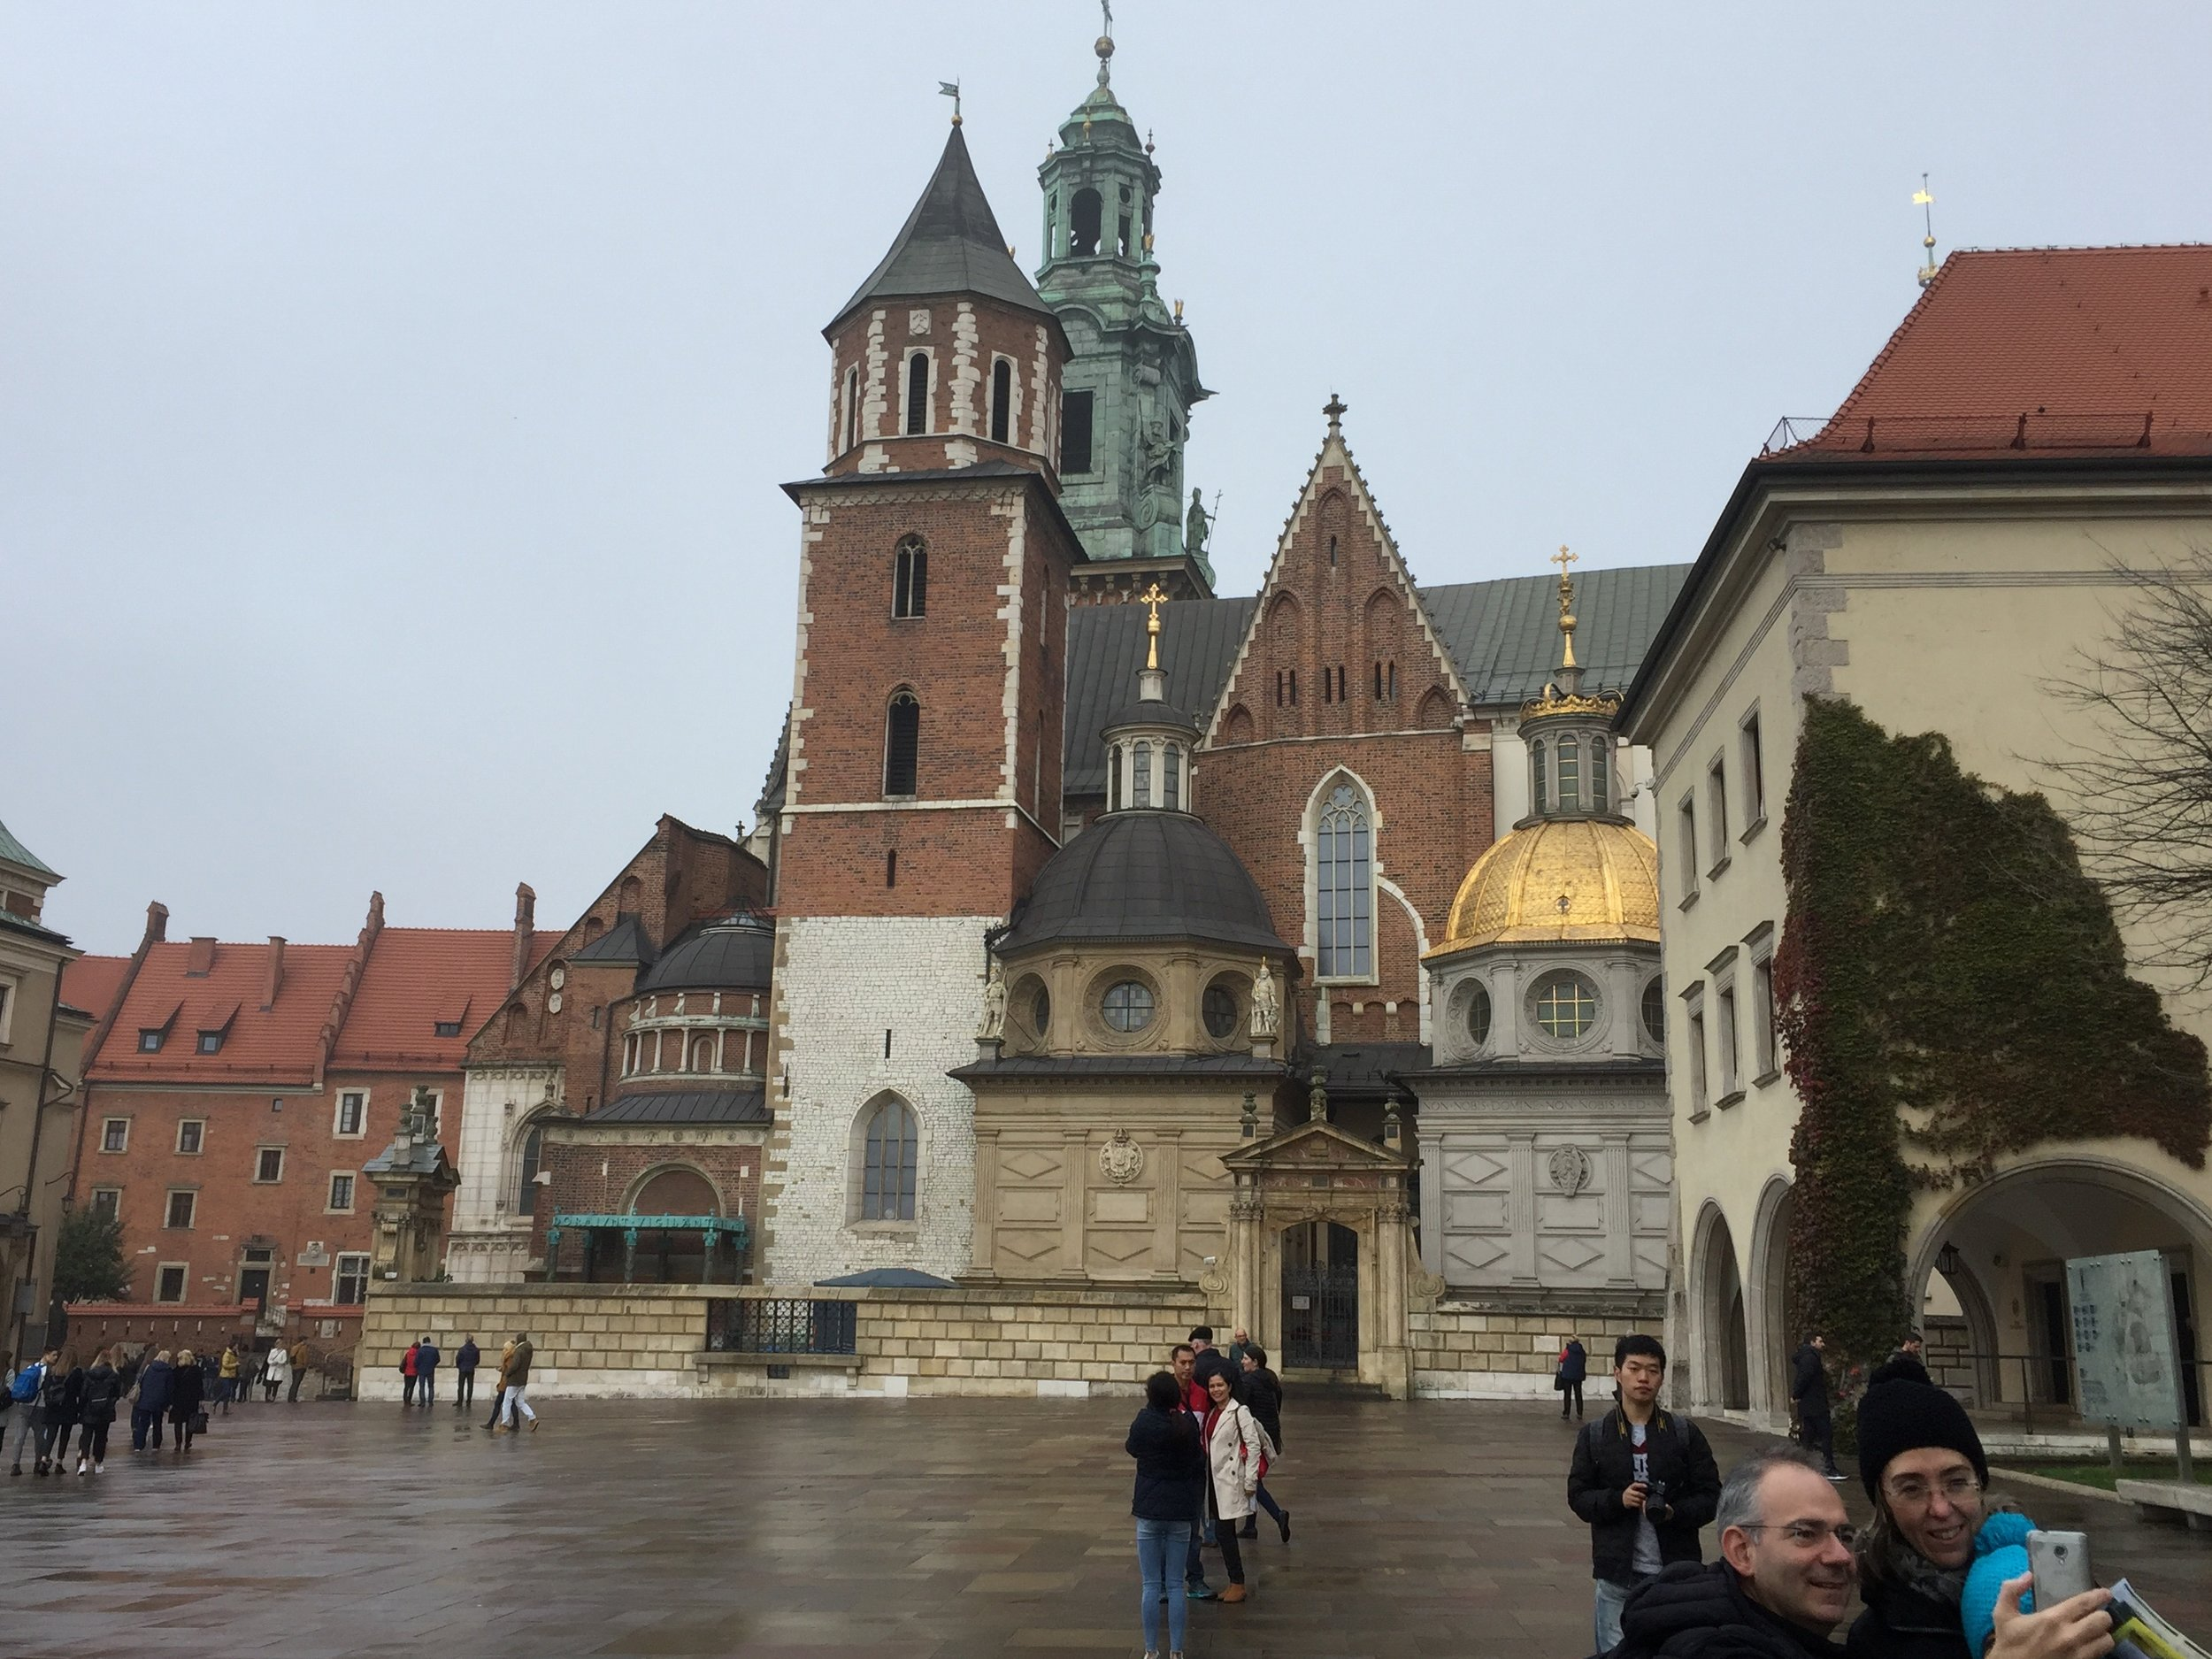 Plaza of Wawel Castle